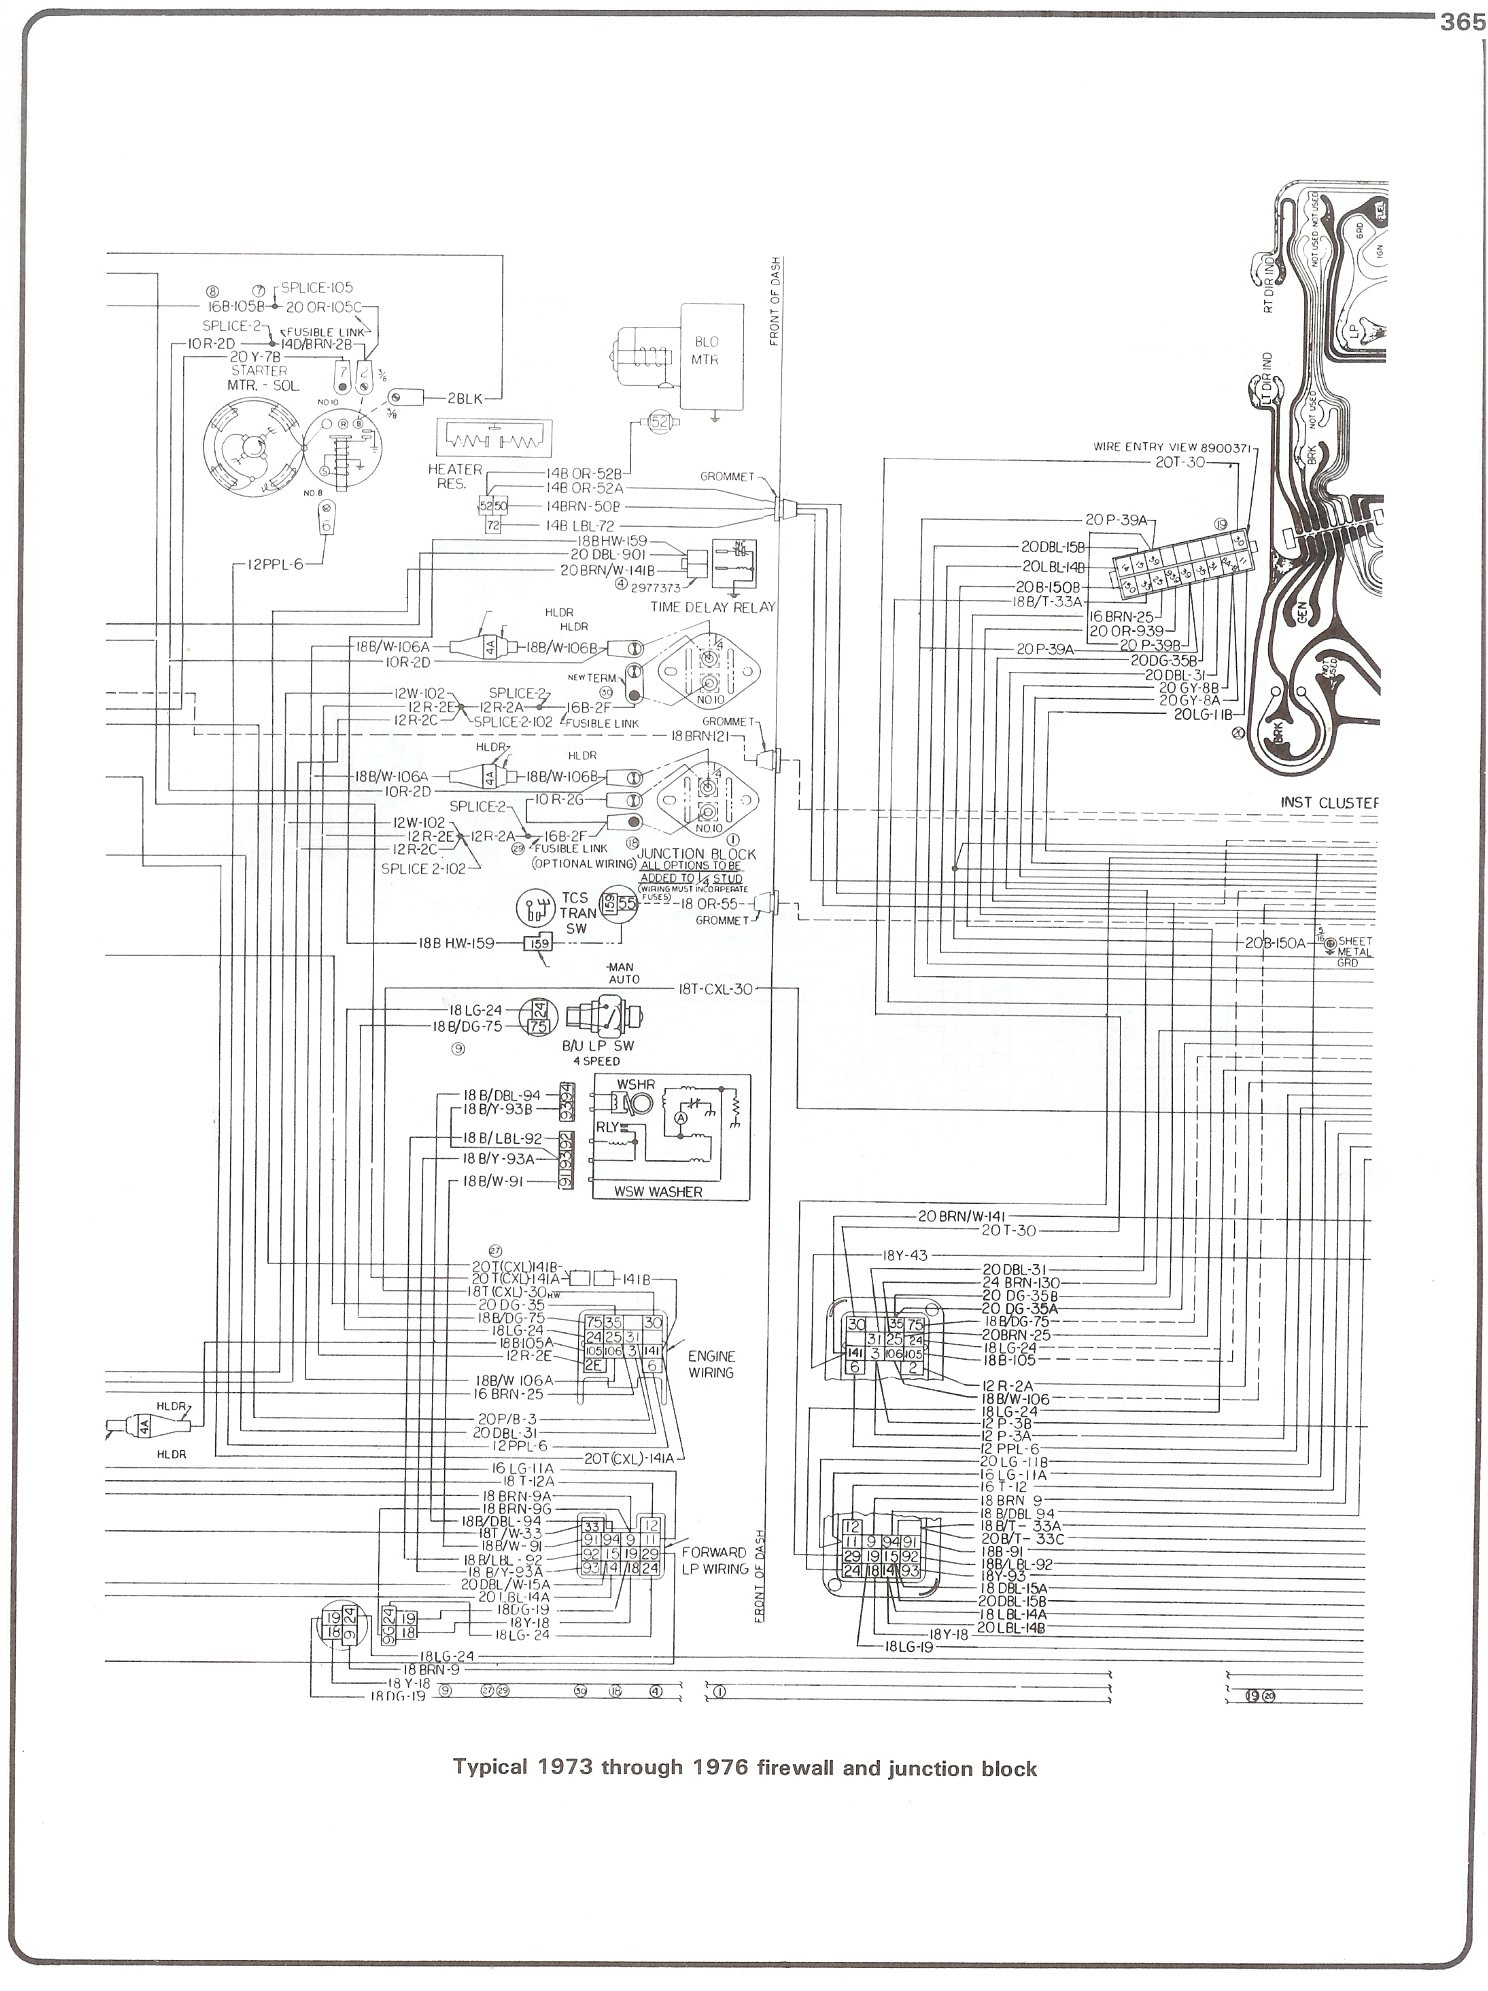 73 76_firewall_junct complete 73 87 wiring diagrams 1978 chevy truck wiring diagram at reclaimingppi.co